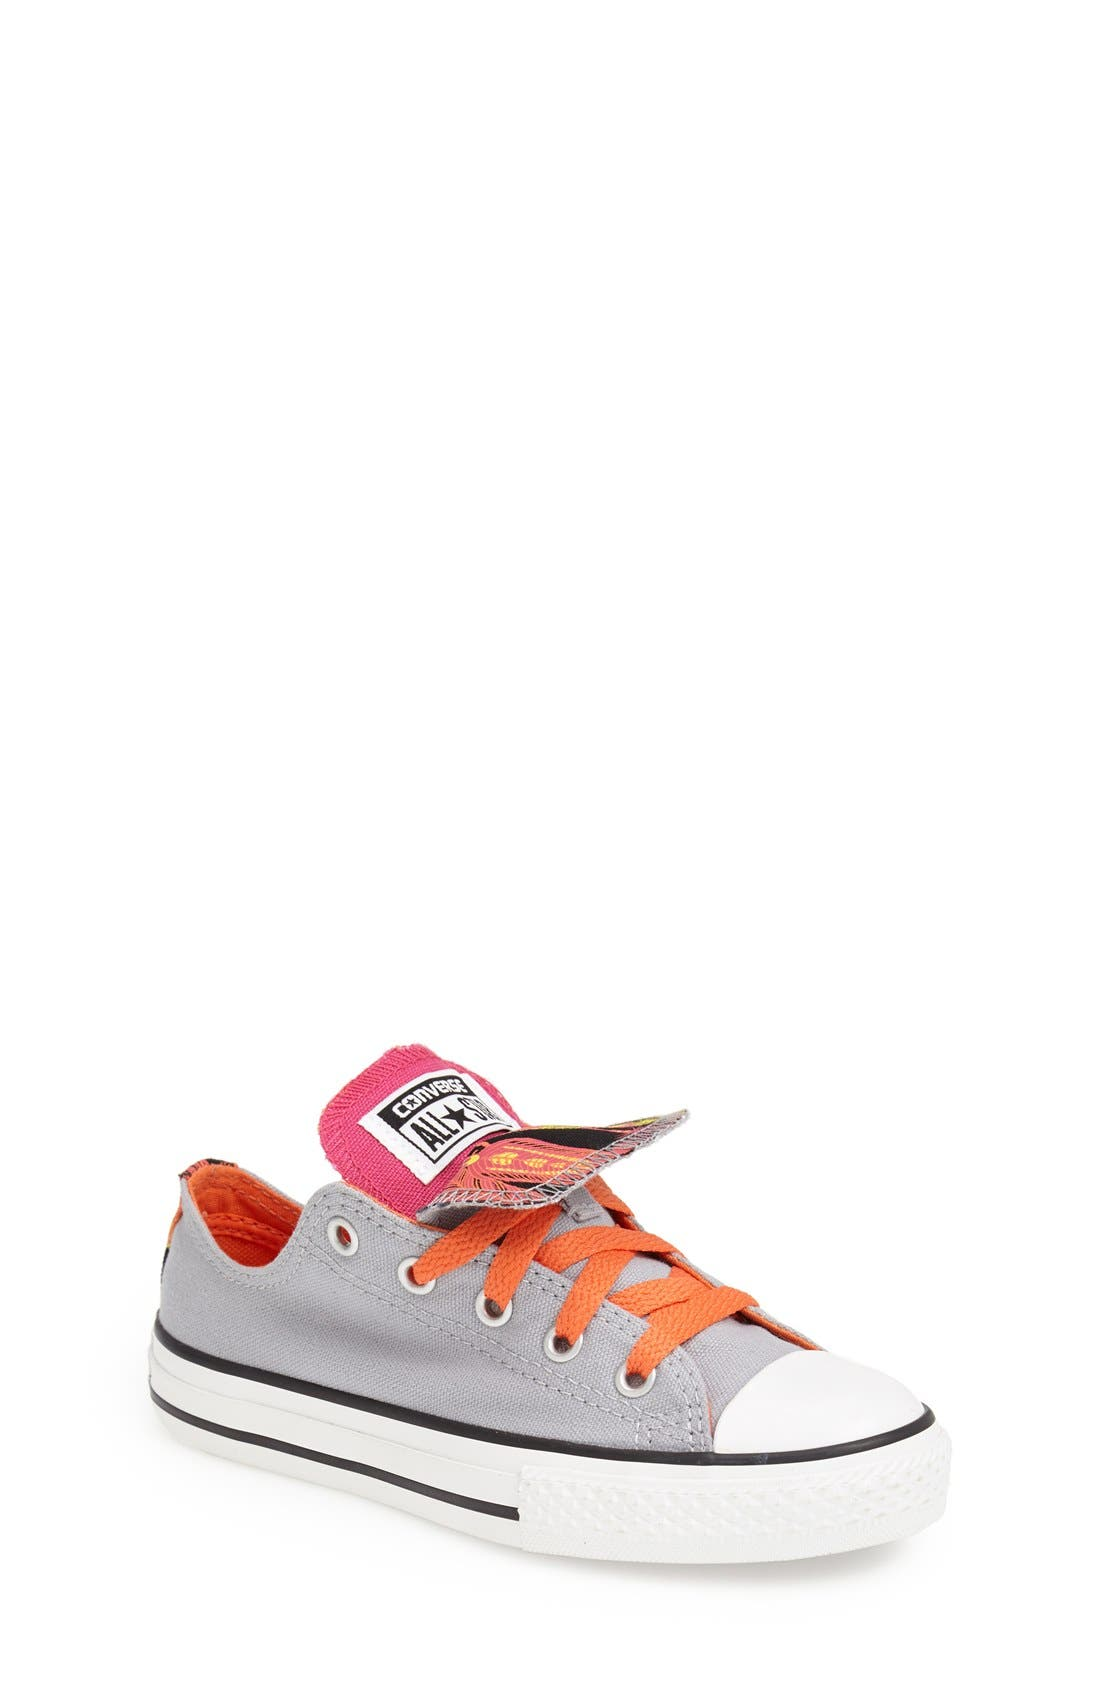 Alternate Image 1 Selected - Converse Chuck Taylor® Double Tongue Sneaker (Baby, Walker, Toddler, Little Kid & Big Kid)